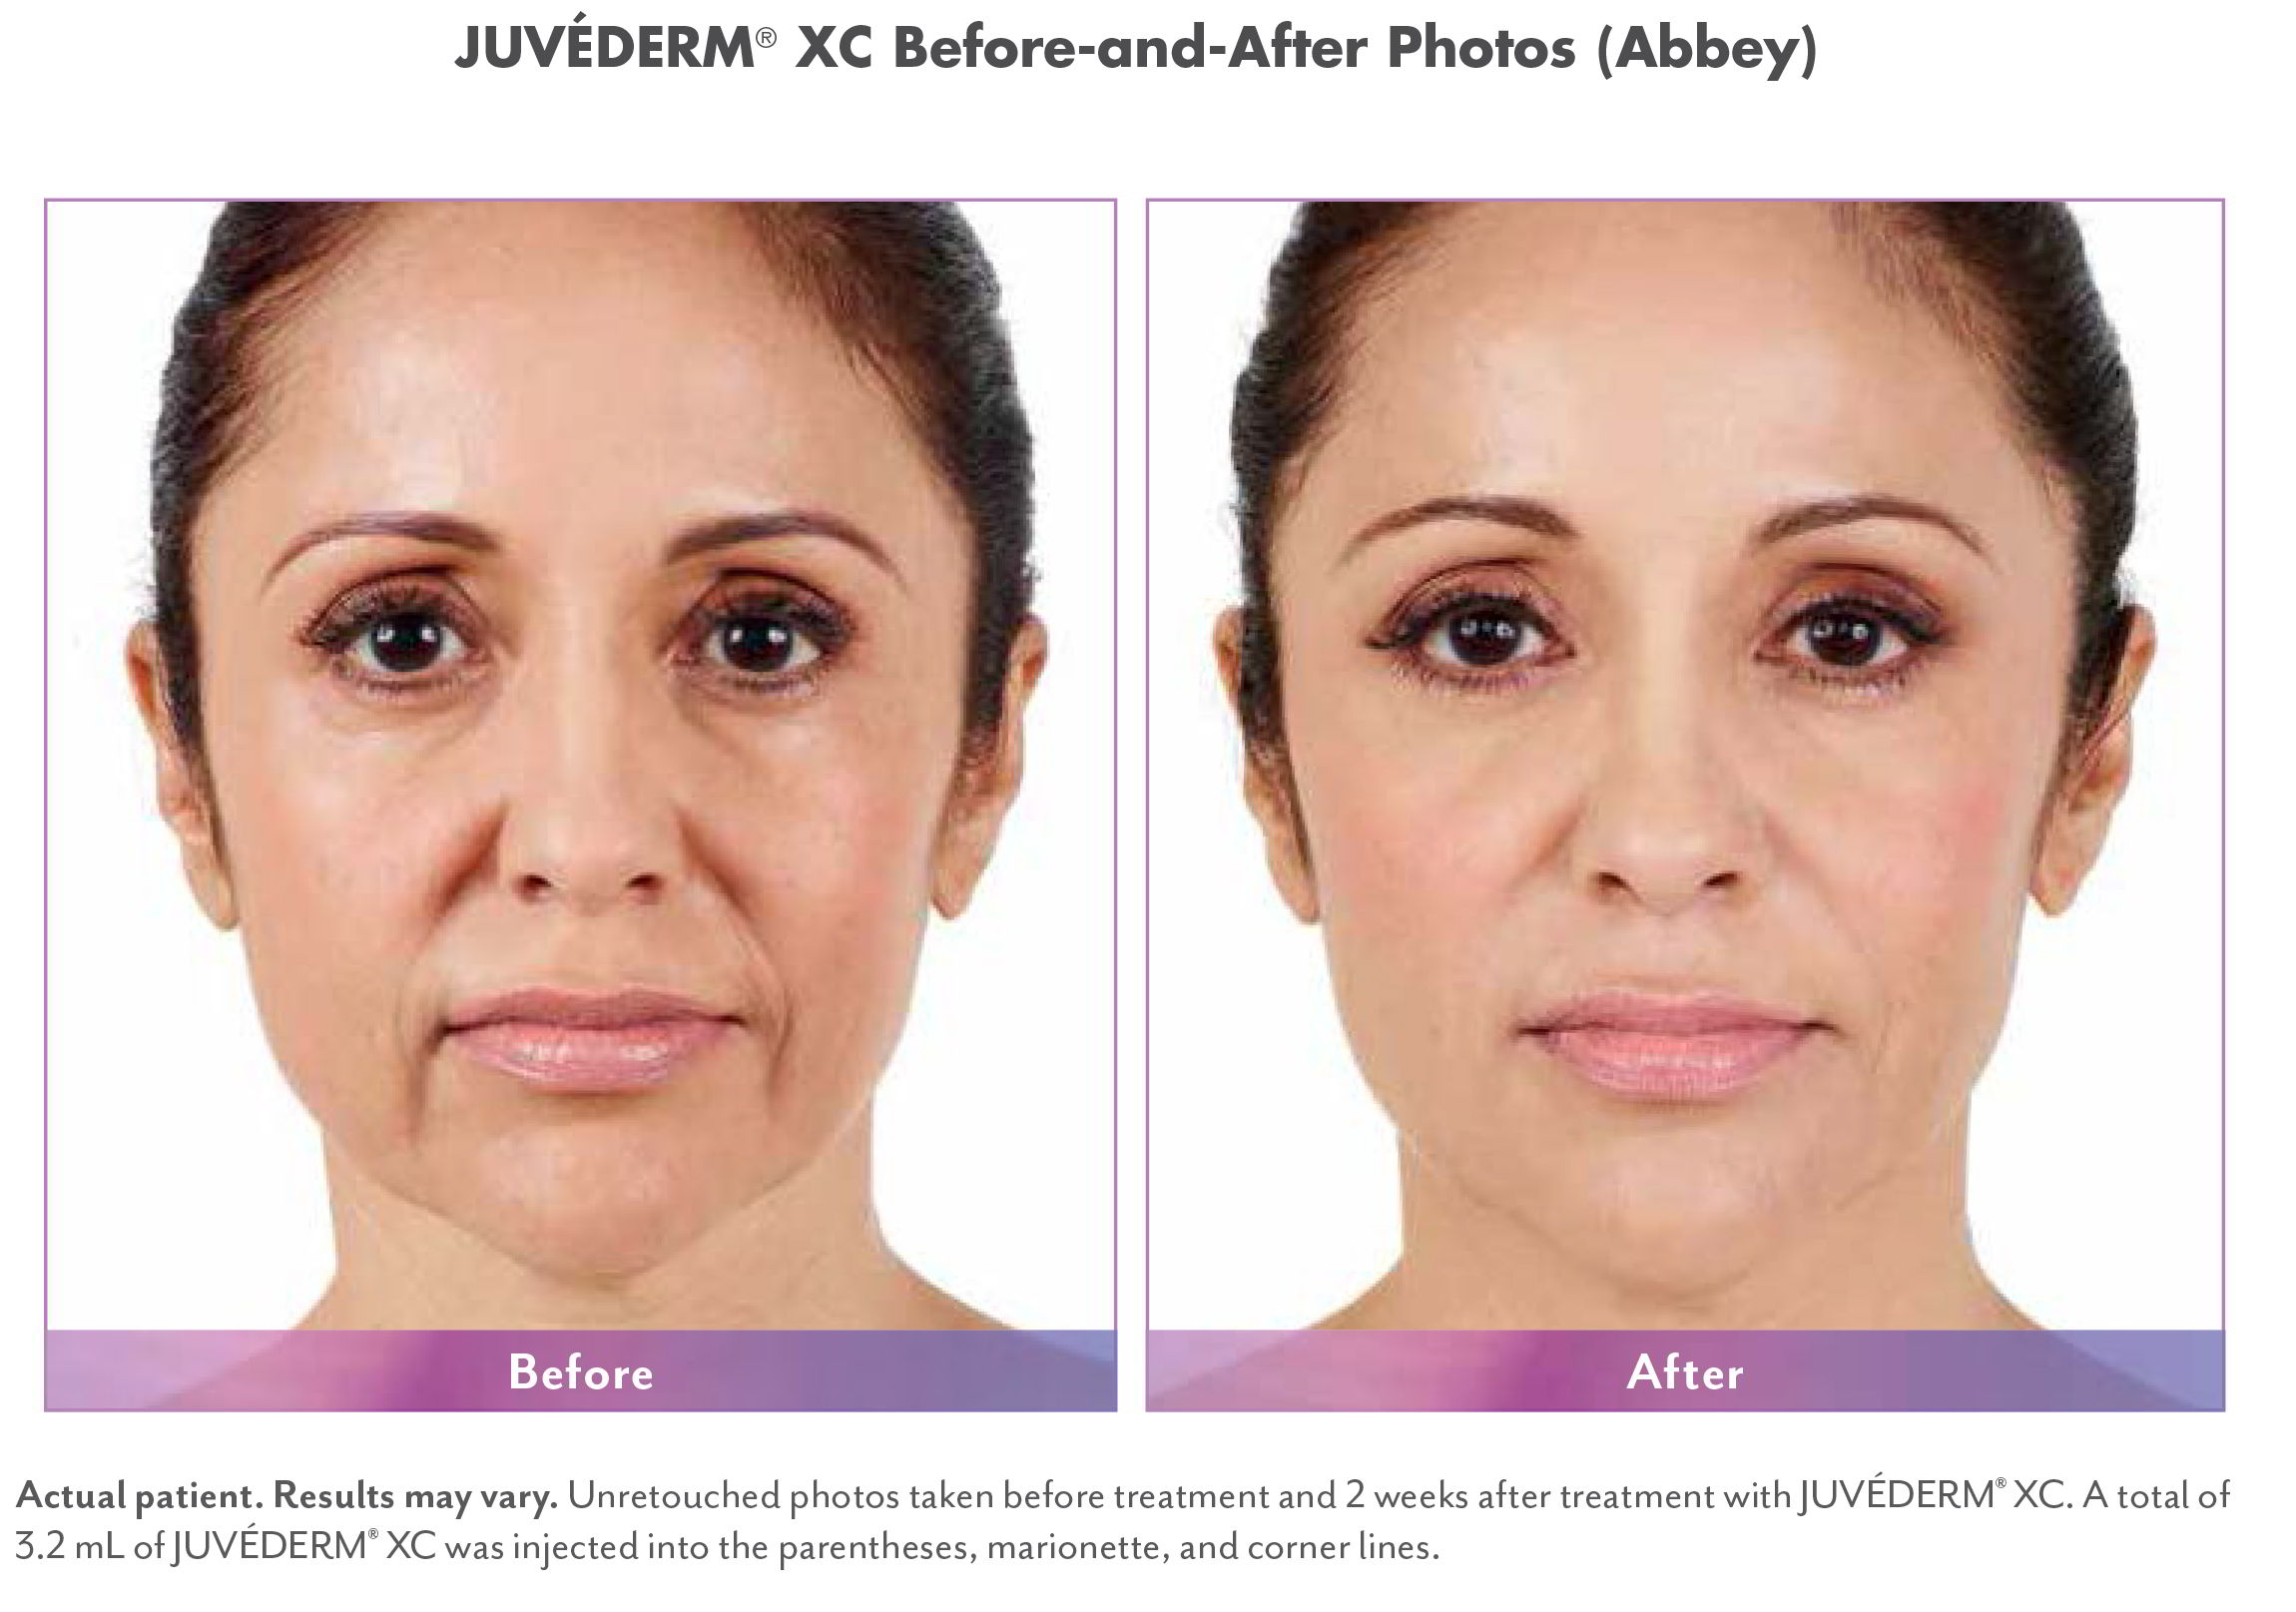 Juvederm XC Injectable Fillers Before & Afters